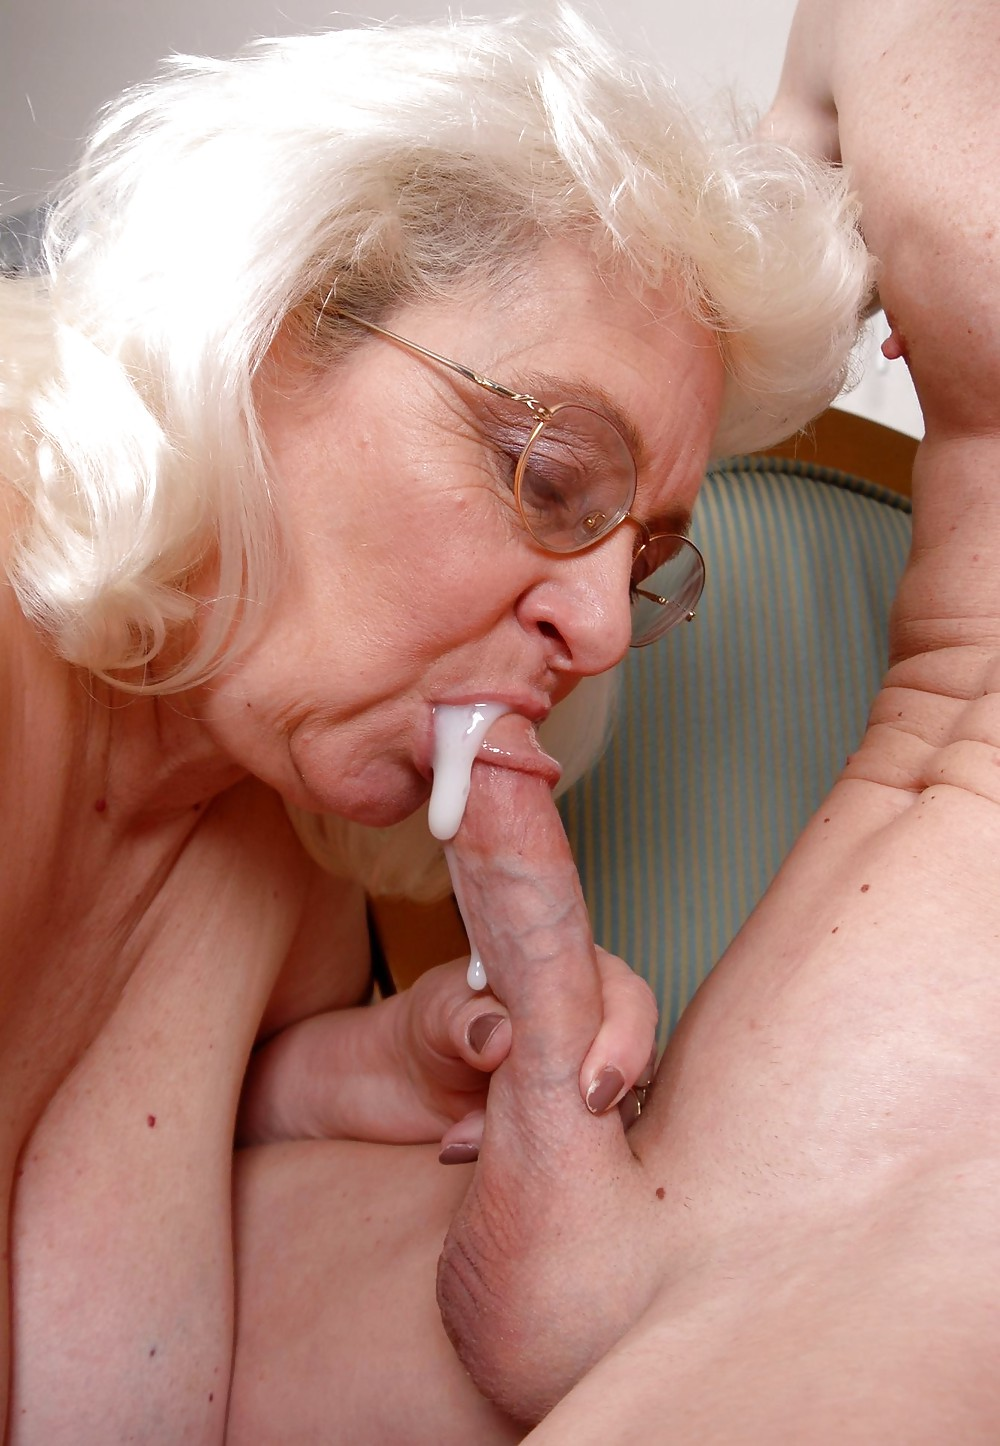 MATURE GRANNIES AND MILFS - FACIALS & CUMSHOTS 2 #22003343